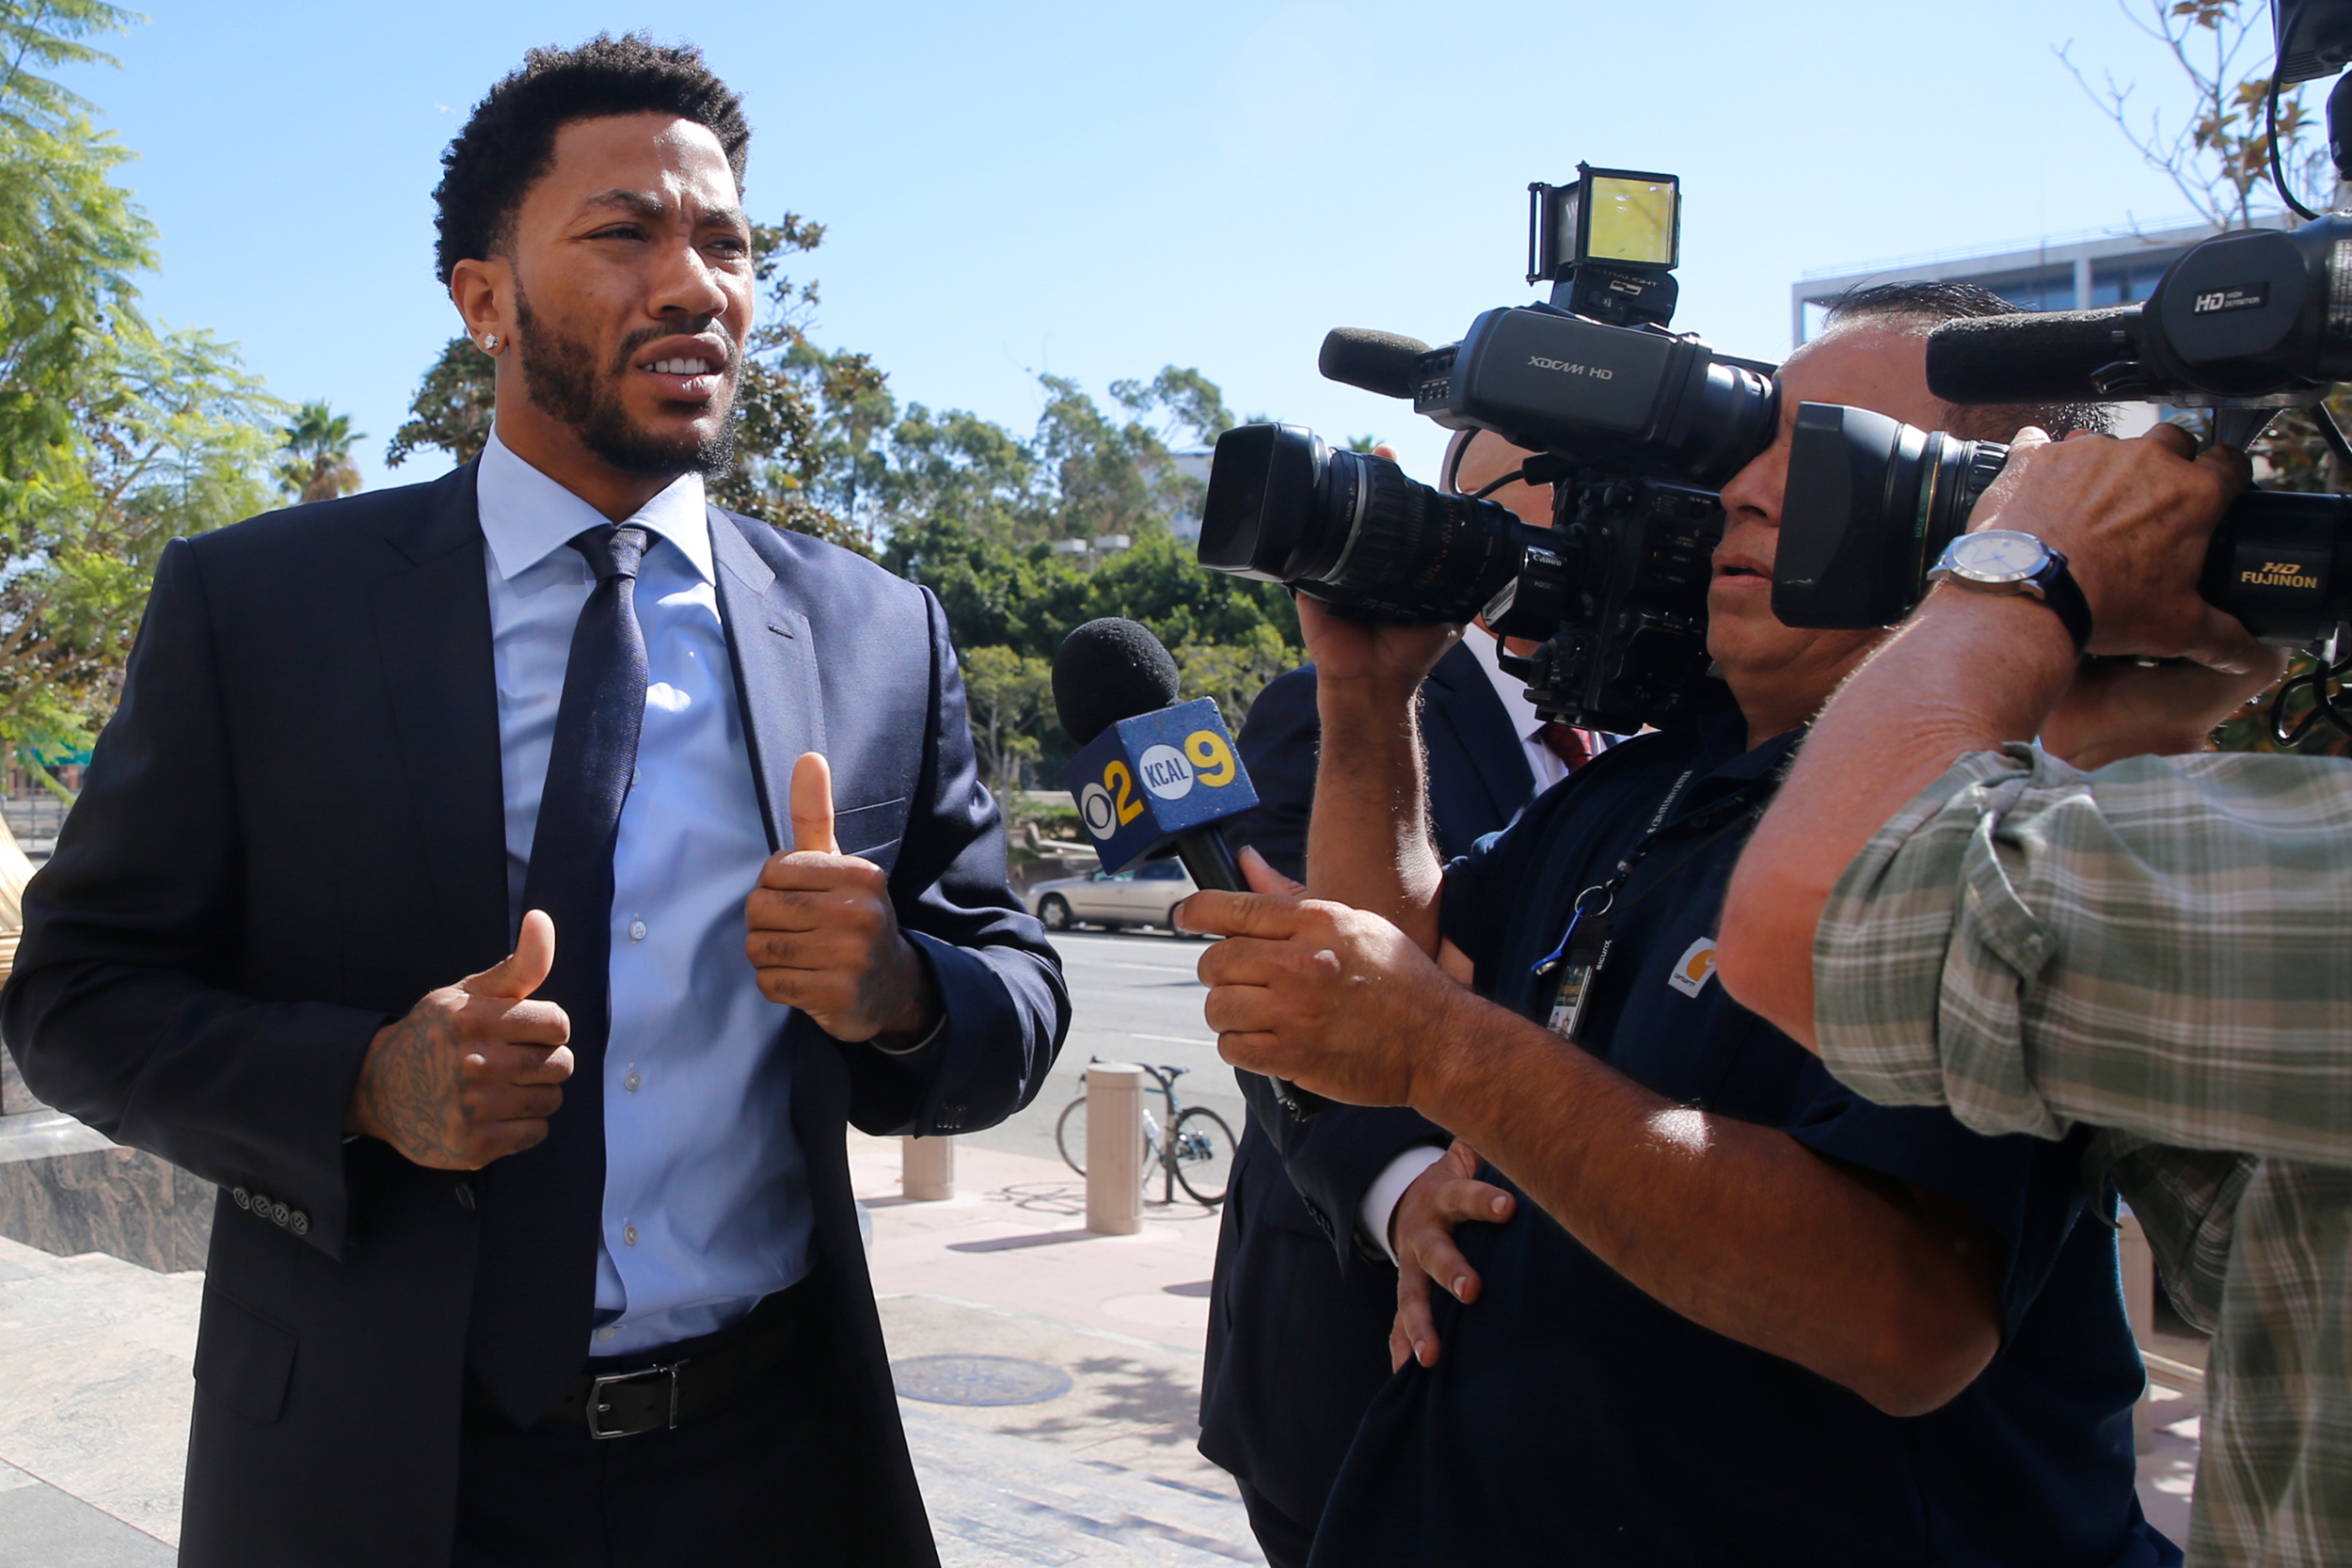 0dcbf70166c5 New York Knicks basketball player Derrick Rose arrives at U.S. District  Court in downtown Los Angeles on Thursday